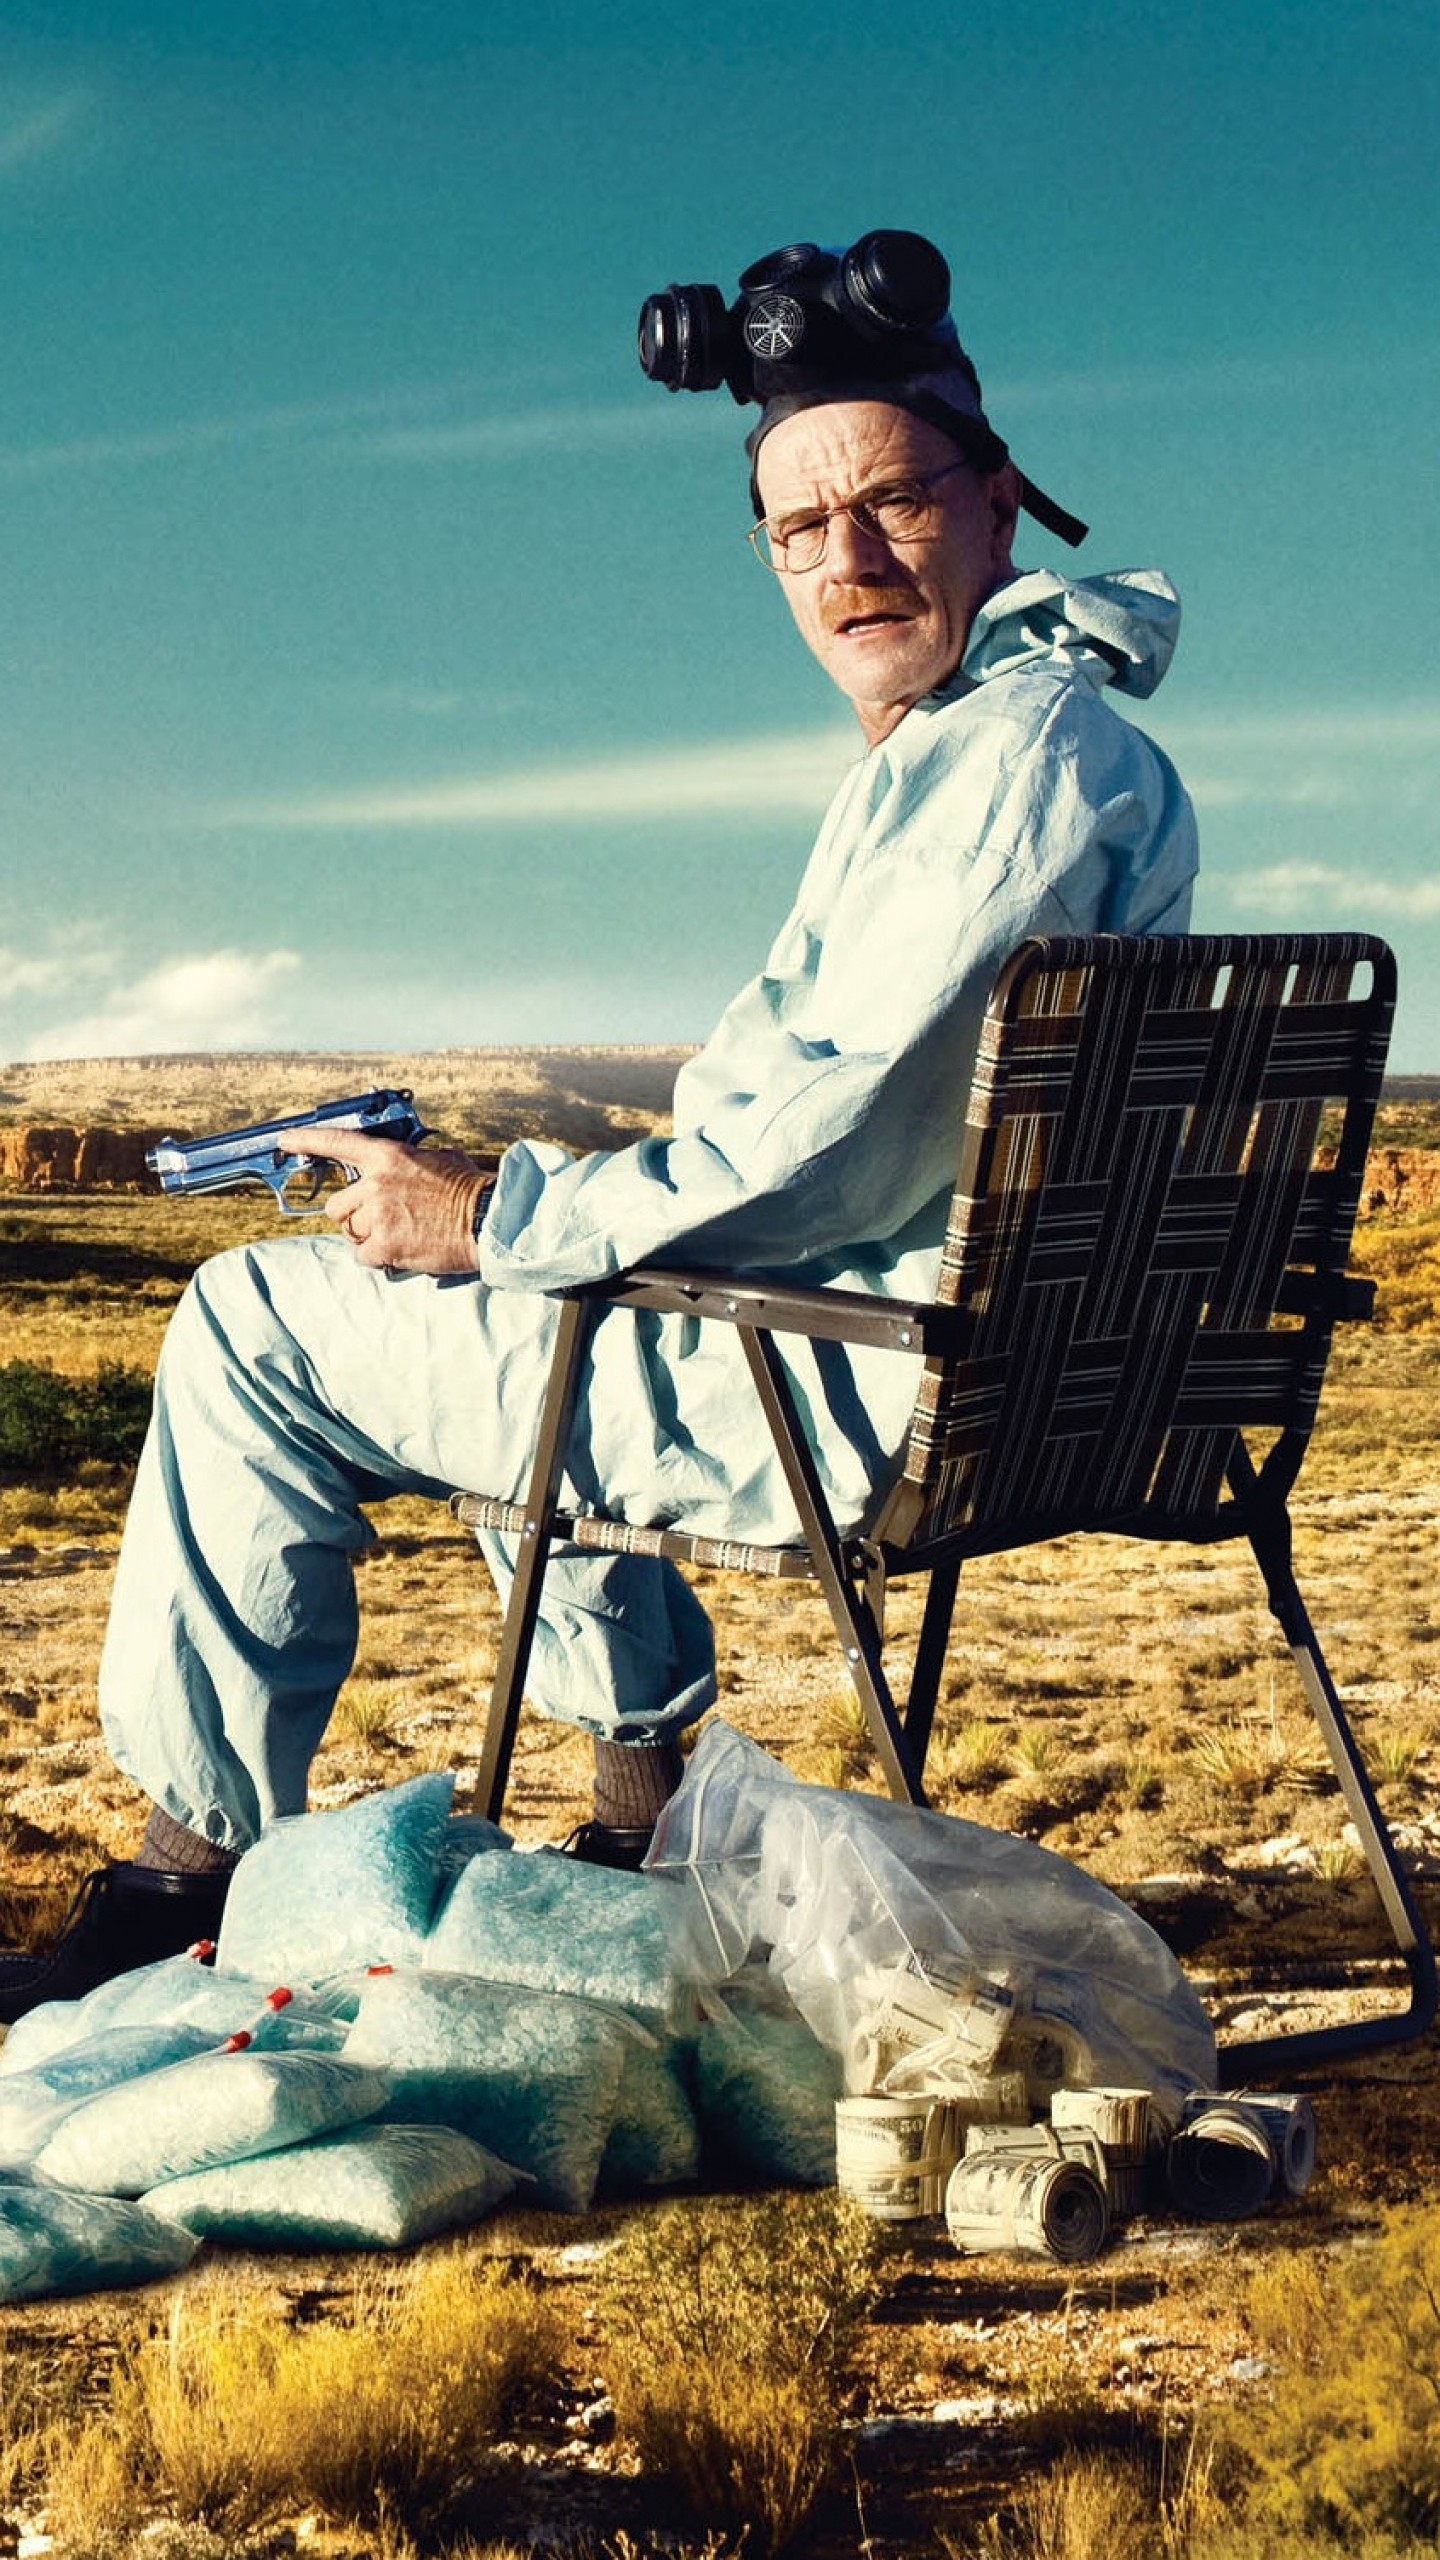 1440x2560 Preview wallpaper breaking bad, bryan cranston, aaron paul, drugs, money